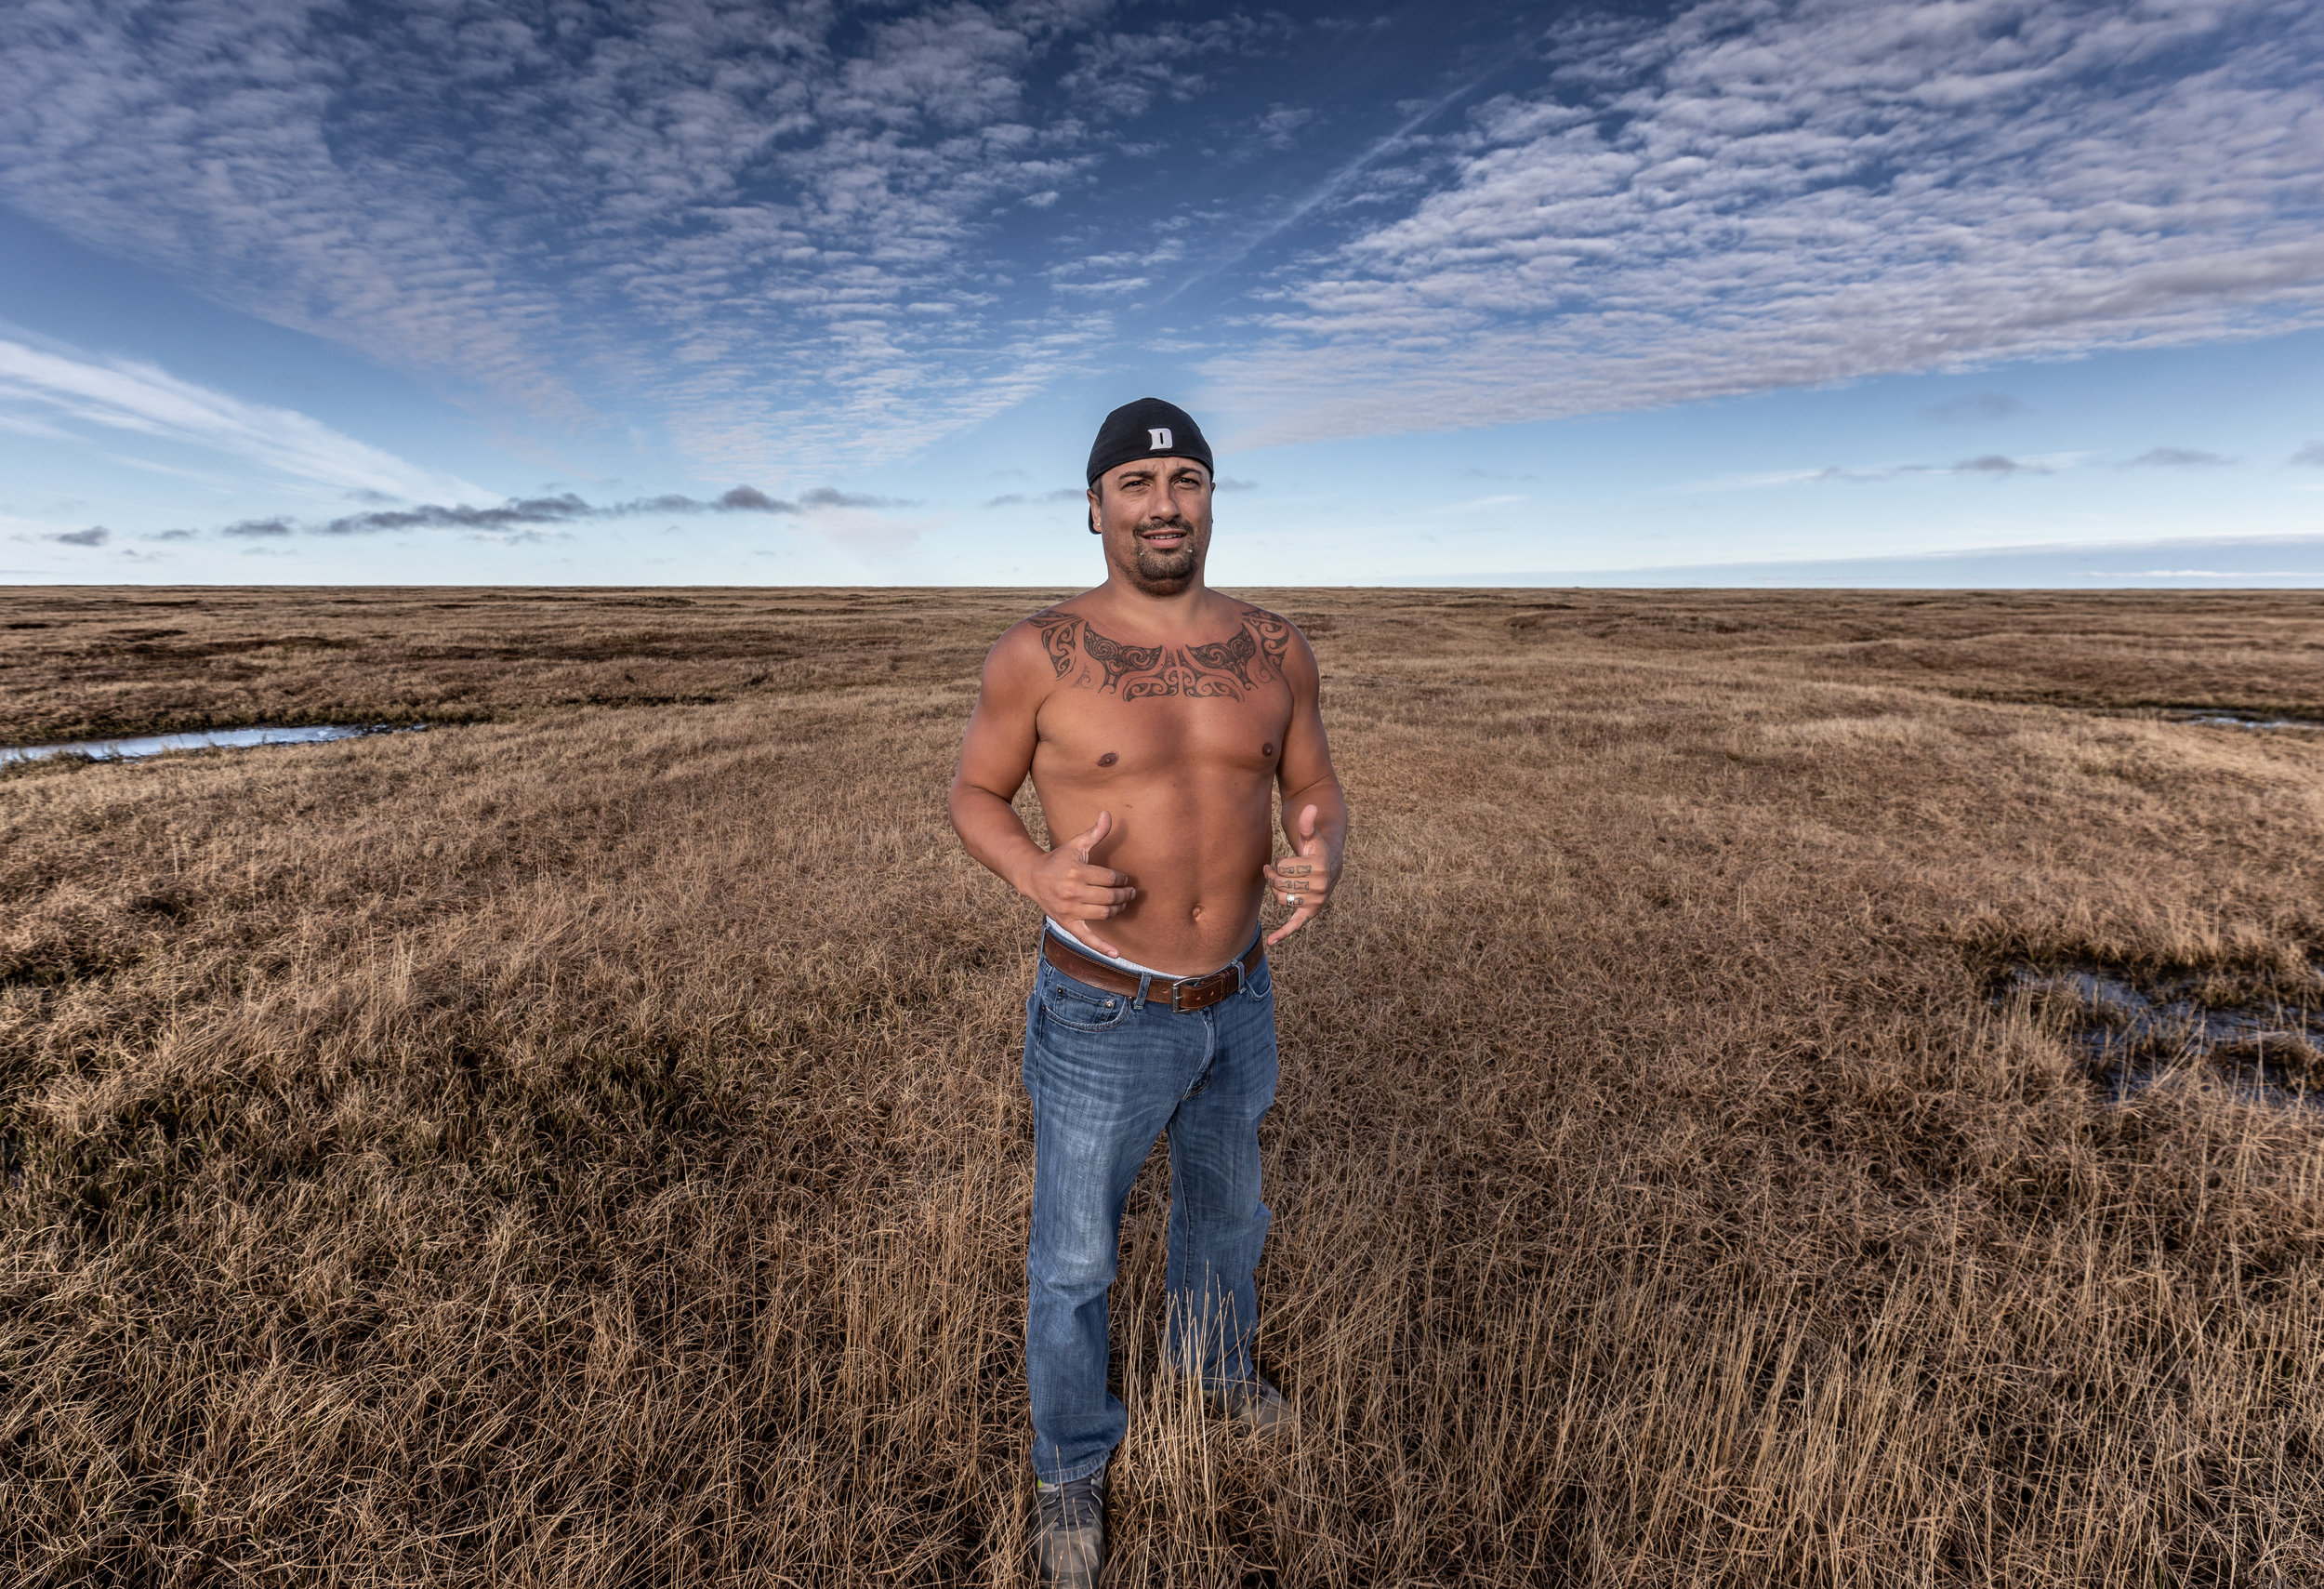 Qaiyaan Harcharek, an Iñupiaq whaler and resident of Utqiaġvik, stands on the Arctic Coastal Plain, the frontline of climate change.